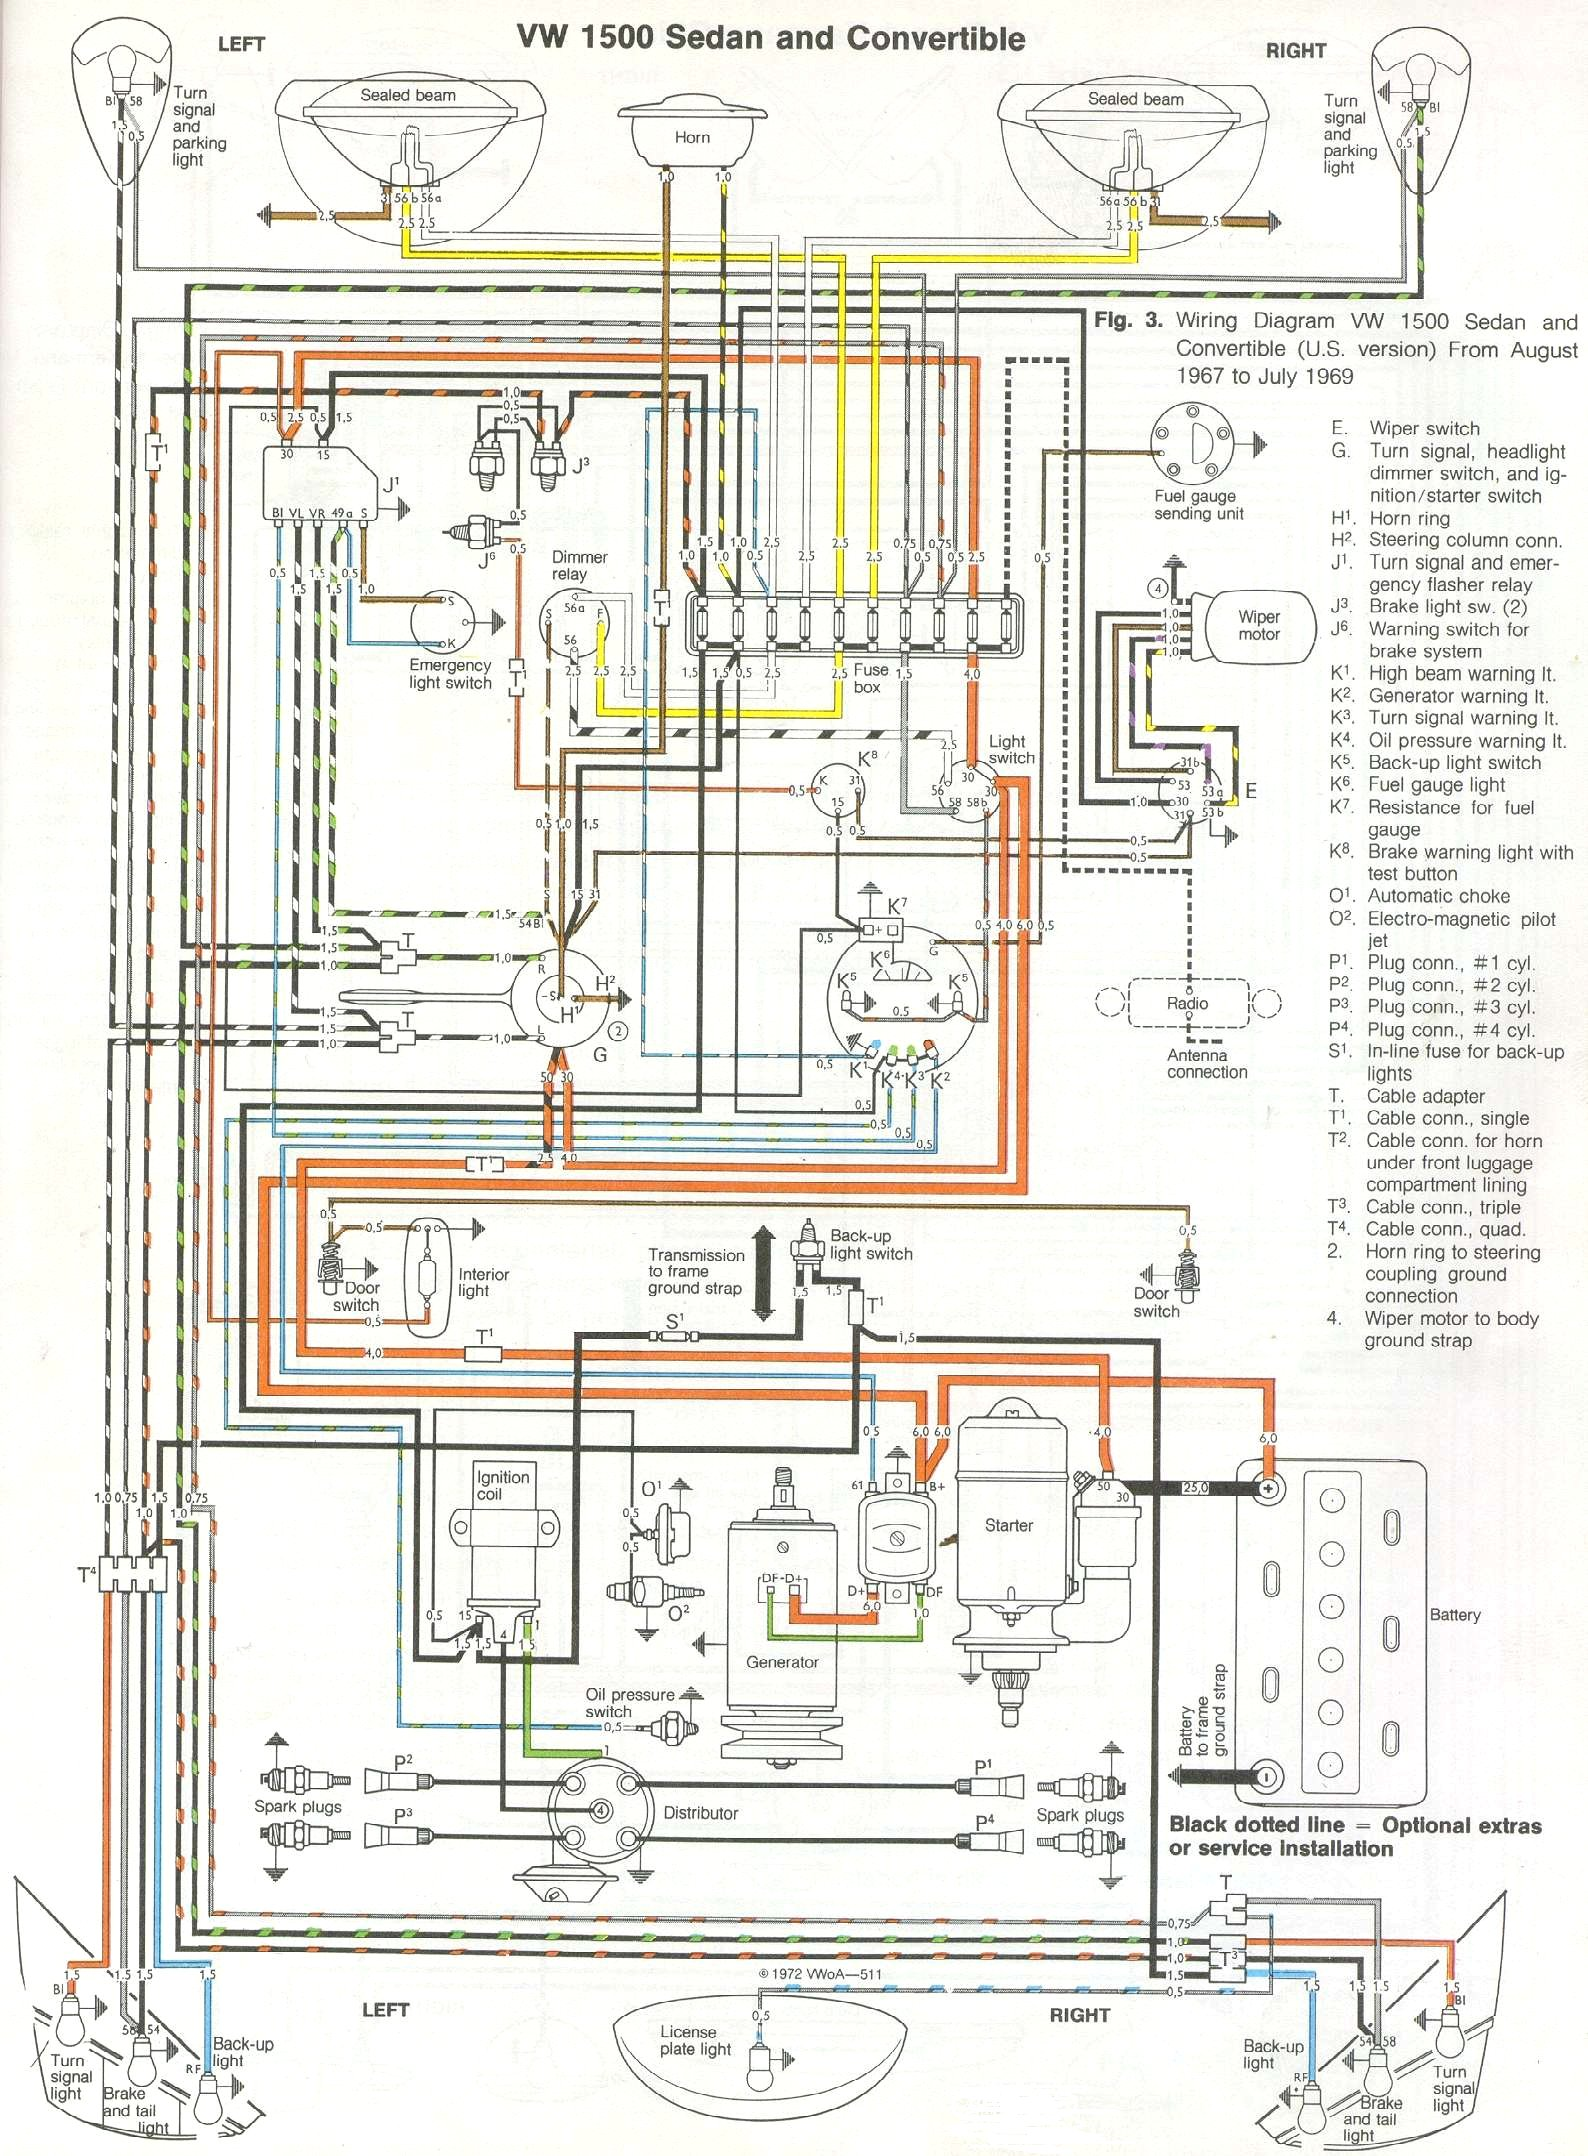 bug_6869 vw wiring harness diagram cj7 wiring harness diagram \u2022 wiring 2002 vw beetle wiring diagram at fashall.co